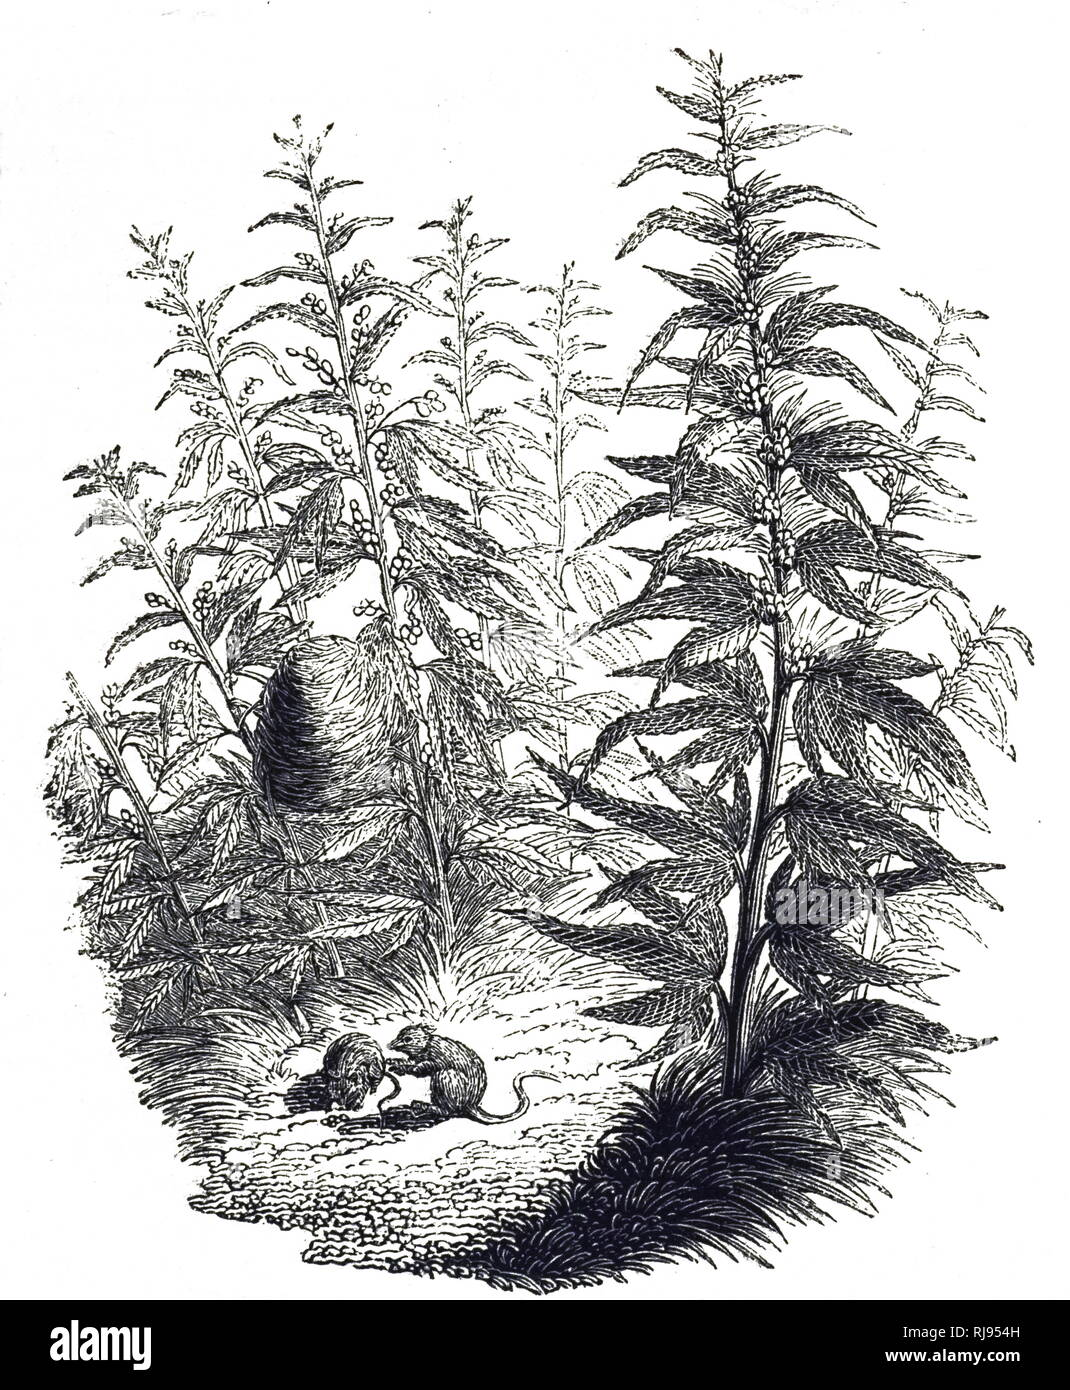 An engraving depicting hemp, a variety of the Cannabis sativa plant species that is grown specifically for the industrial uses of its derived products. Dated 19th century - Stock Image